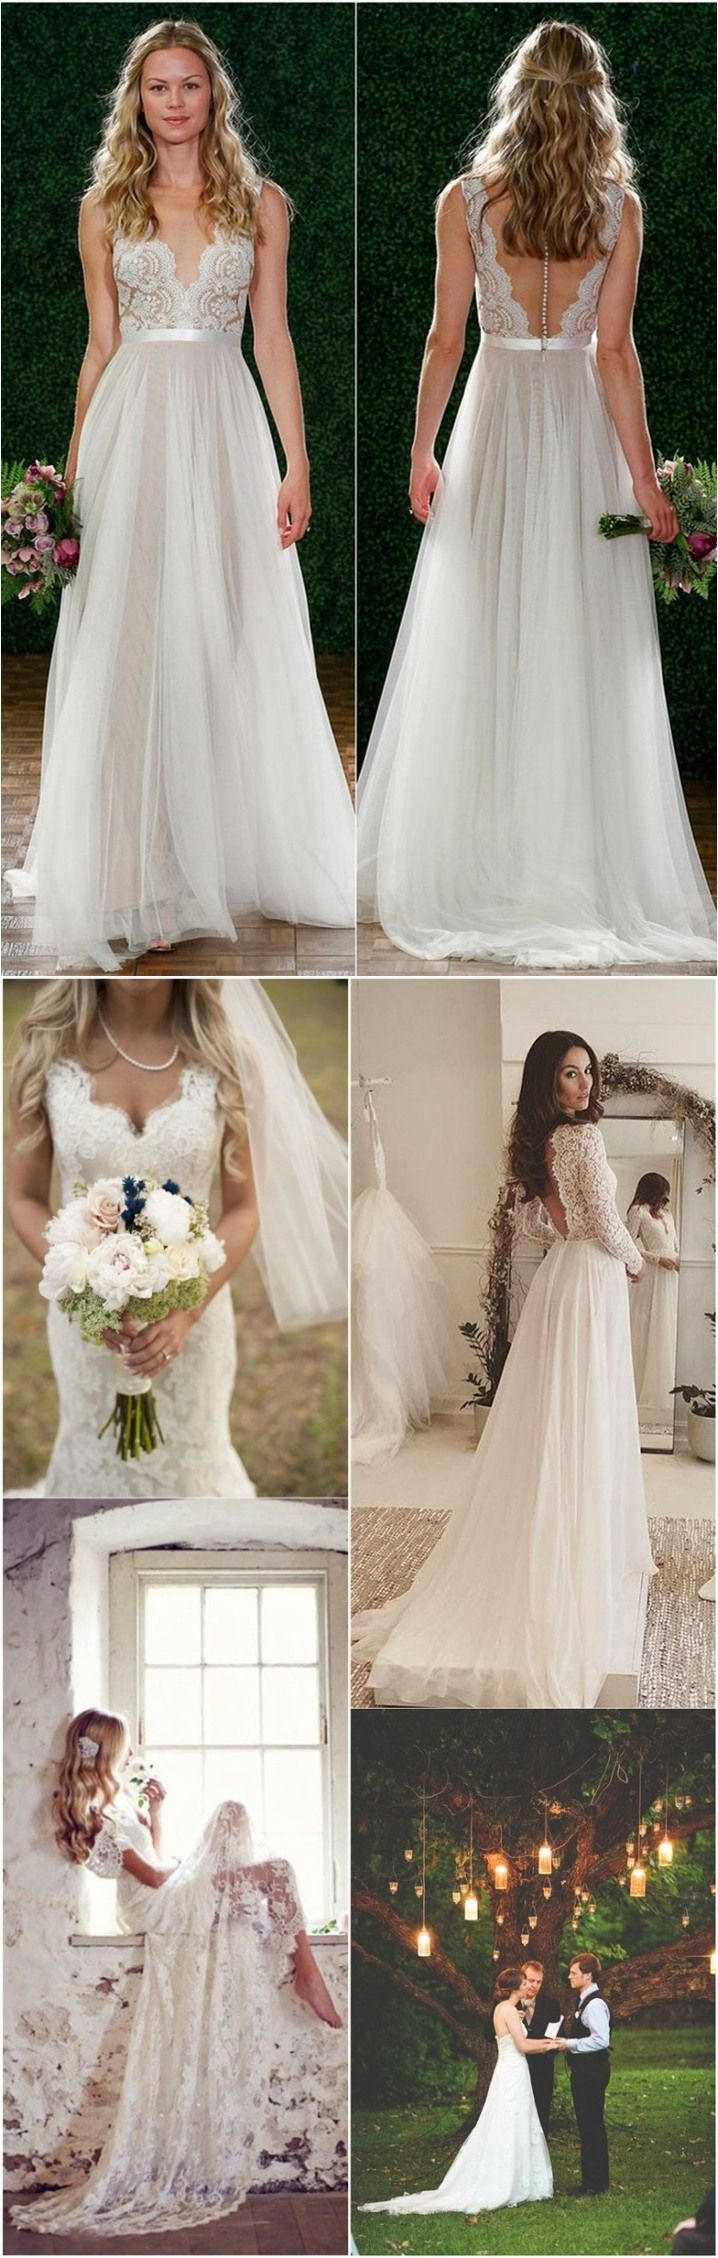 30+ Rustic Wedding Theme Ideas | Country wedding dresses, Rustic ...